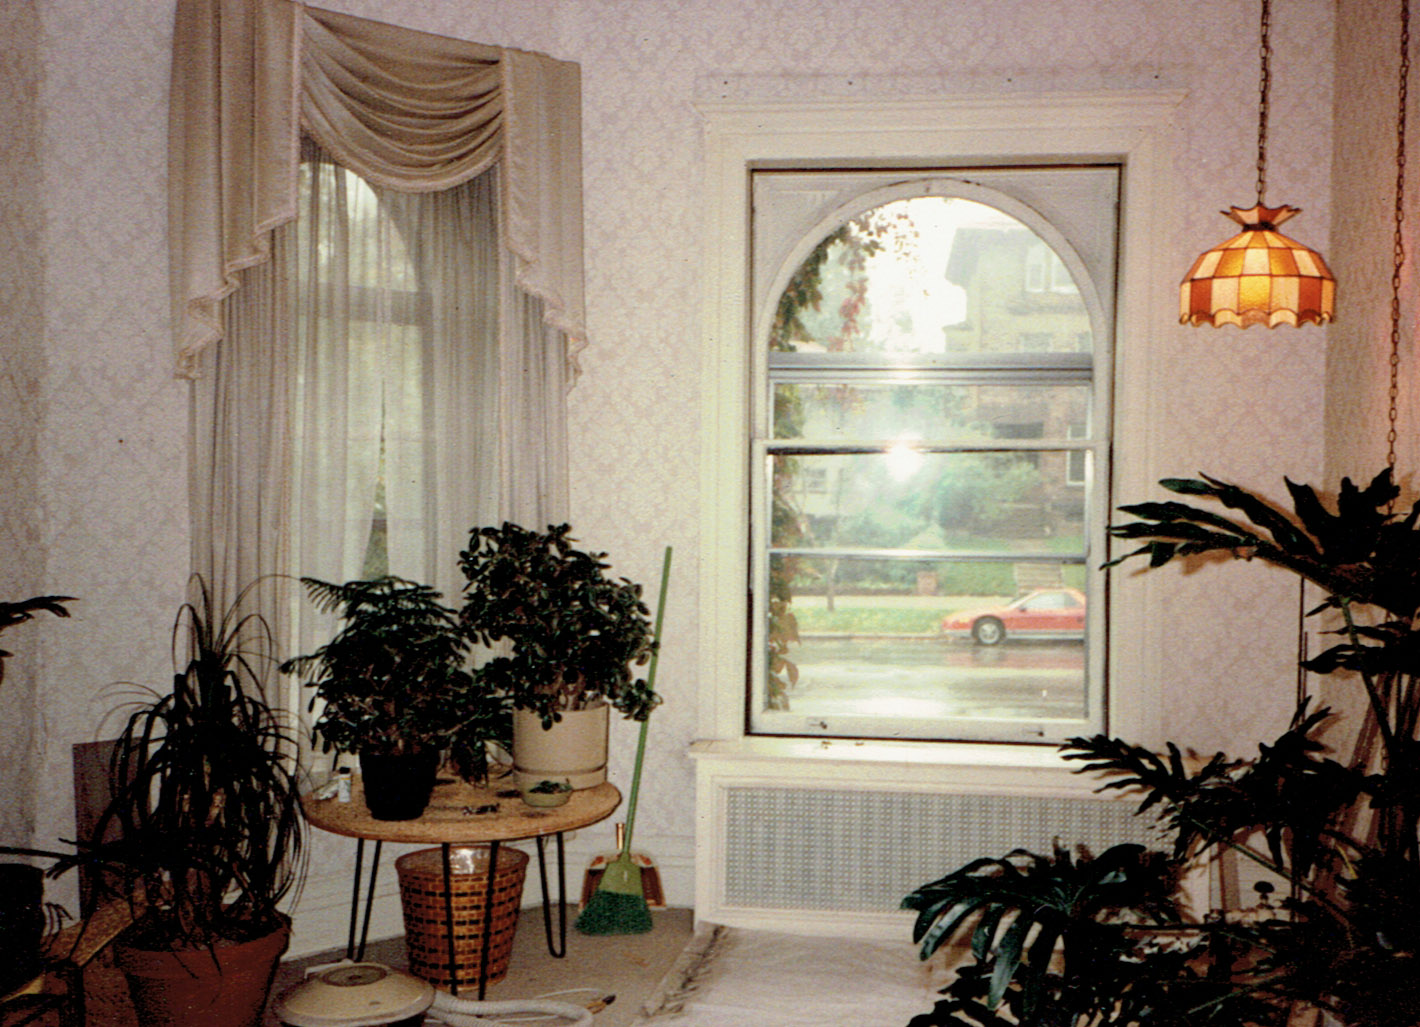 When Dick bought 953 Summit, the decoration of the front room included wallpaper, white painted trim, carpeting and a very 70s lamp.